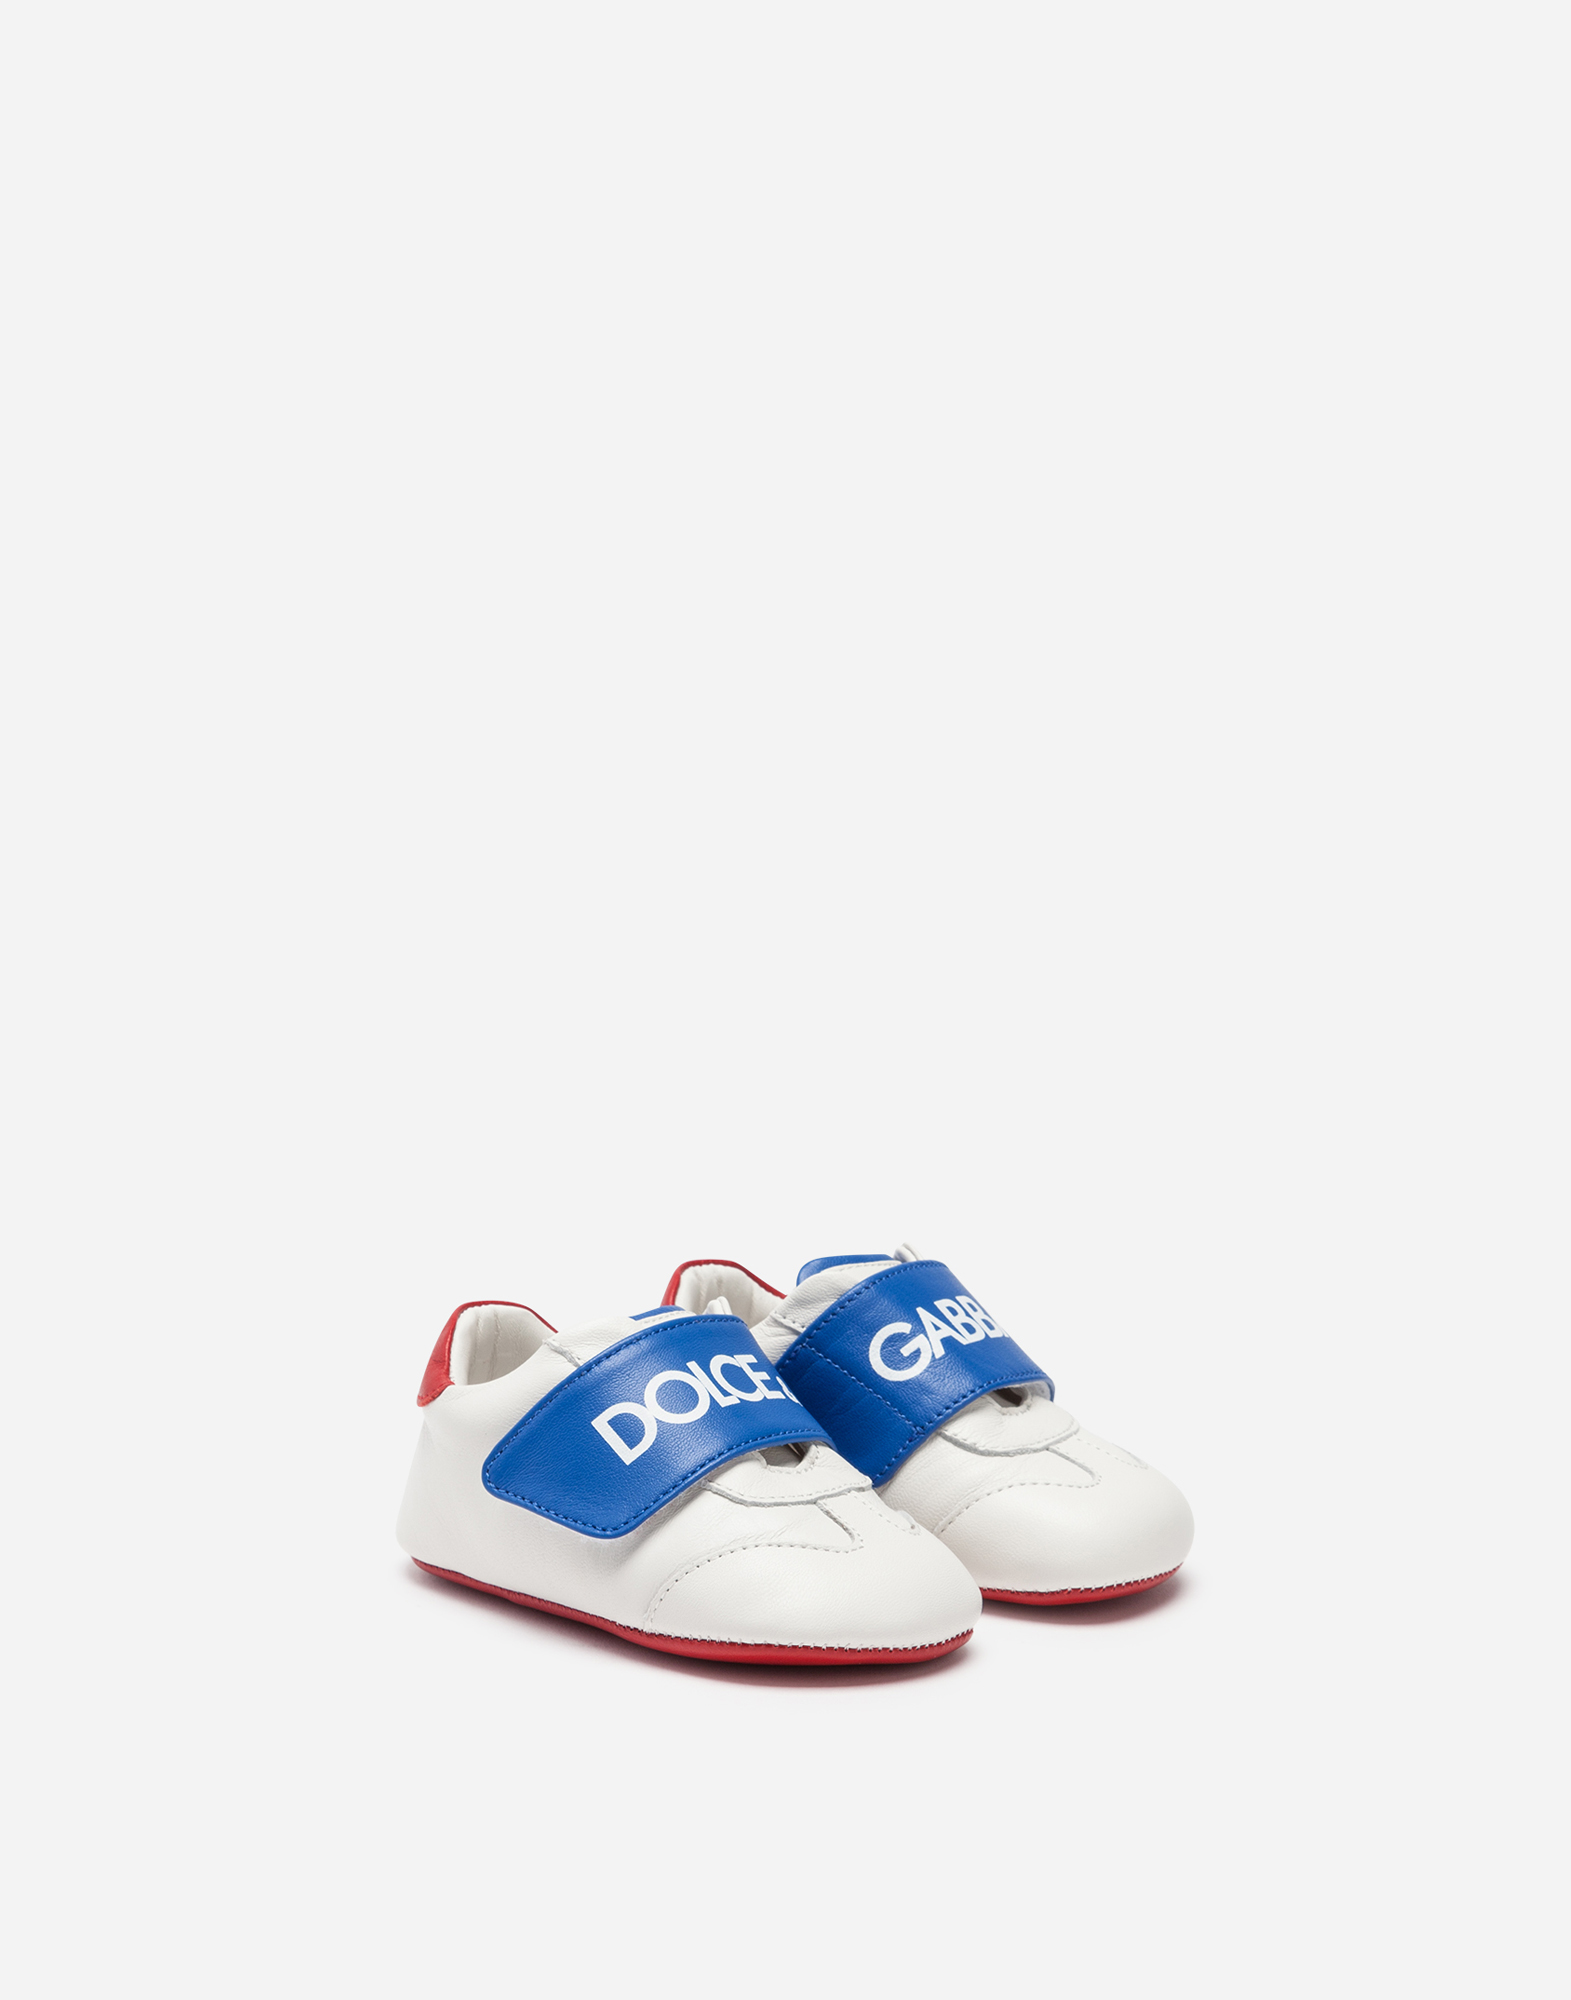 Dolce&Gabbana SNEAKERS IN BRANDED NAPPA LEATHER